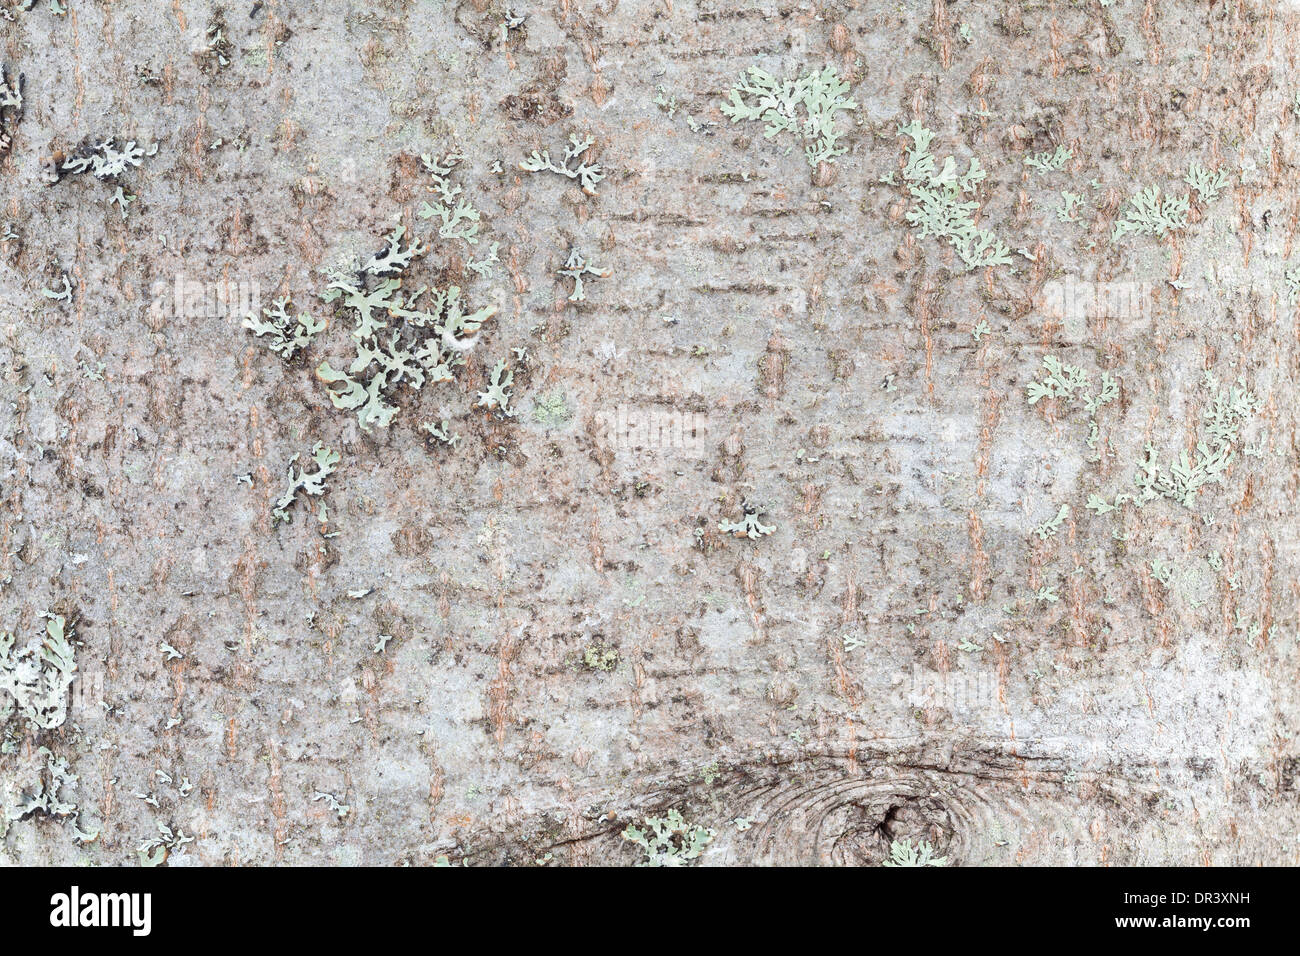 Natural tree bark surface textures - Stock Image